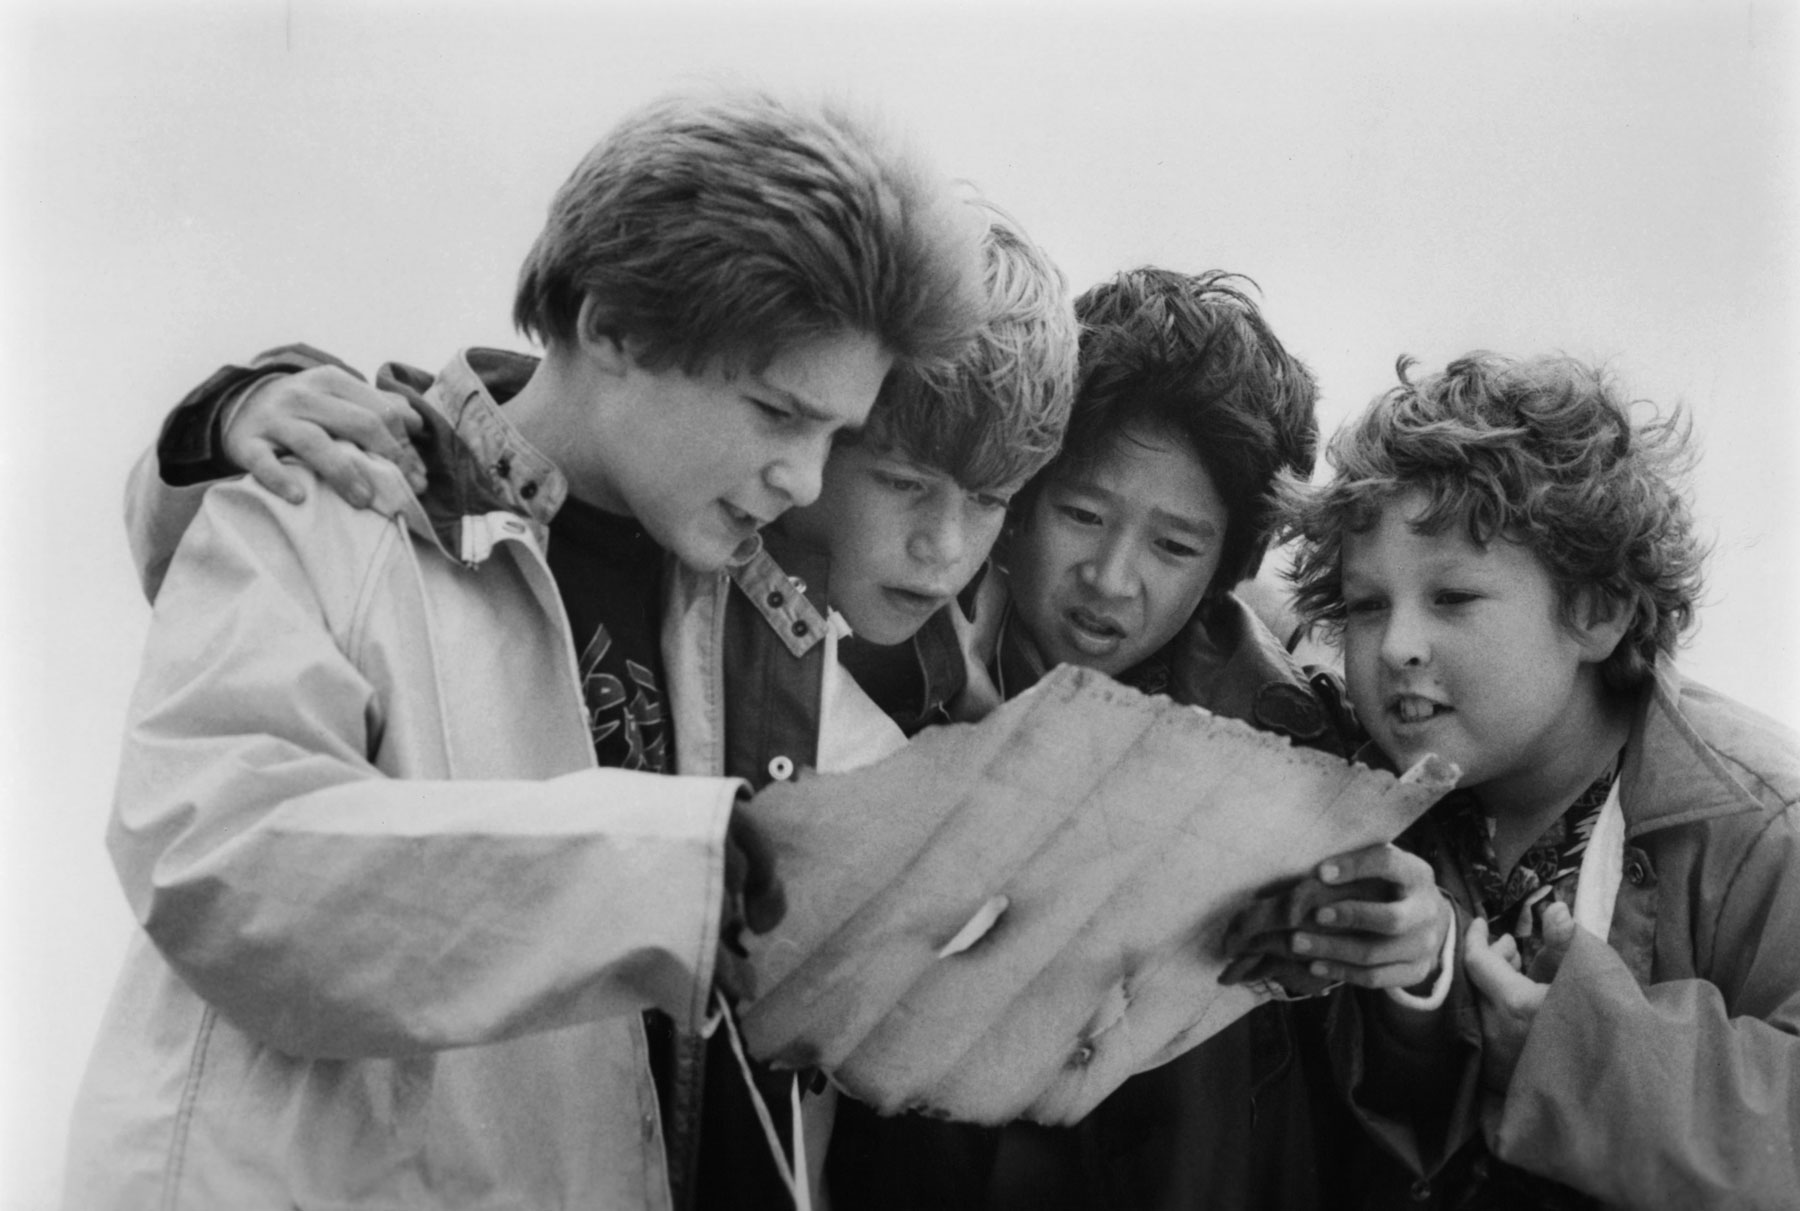 'The Goonies' Sequel in the Works